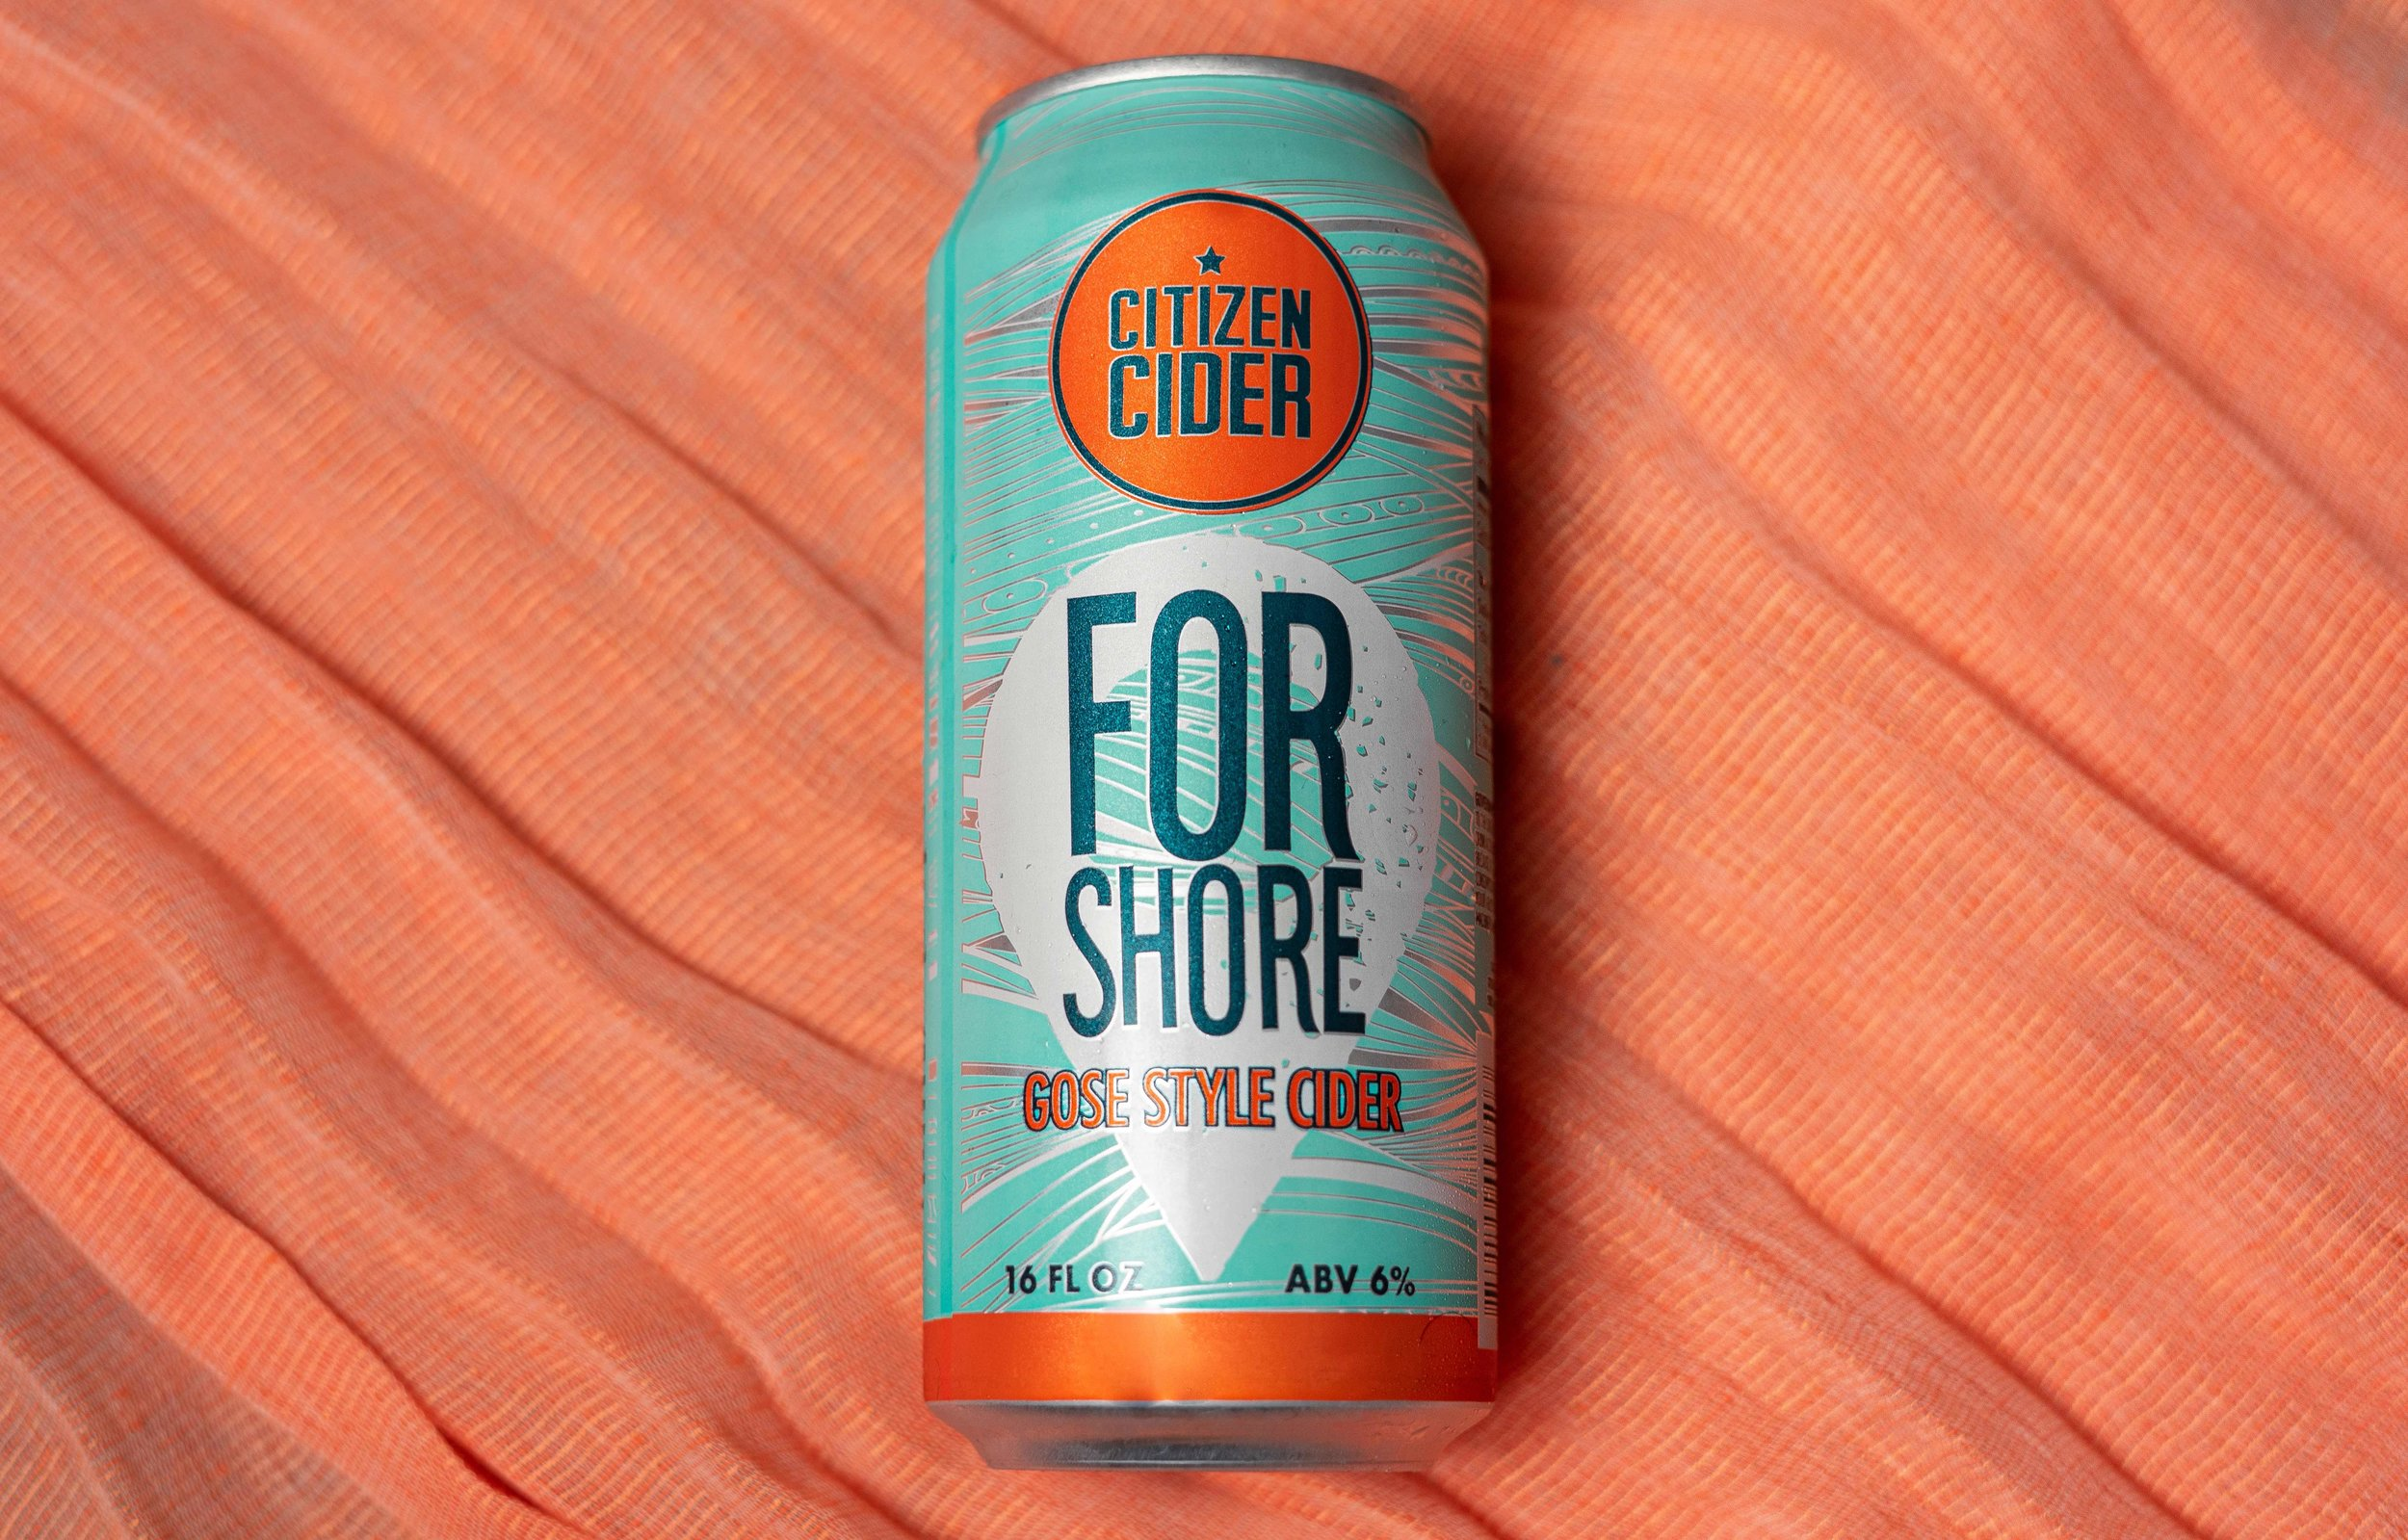 Citizen Cider For Shore